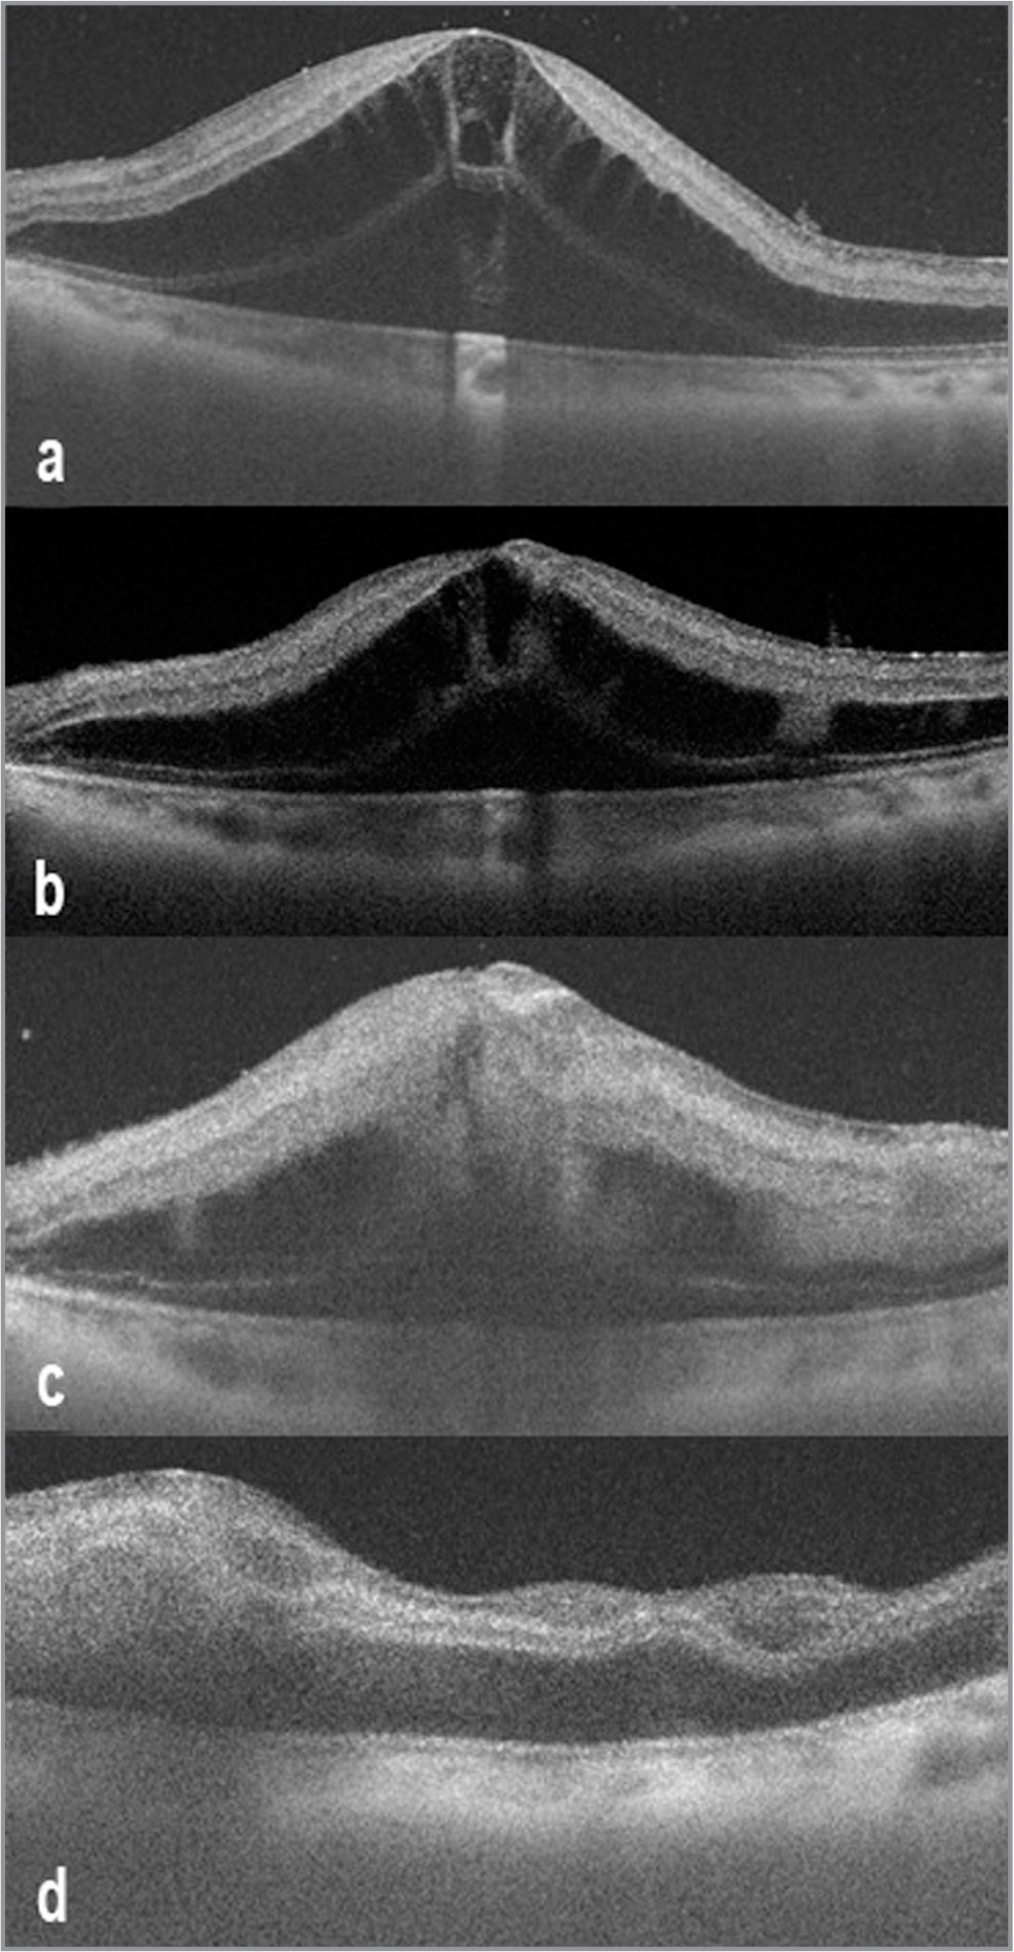 Transverse optical coherence tomography scans through the macula on day 1 (a) show great elevation of neurosensory retina, large cystoid spaces in the outer nuclear layer, and preserved integrity of inner retinal layers. Progressive decrease in detachment height and increased disorganization of the inner retinal layers are evident across day 2 (b), day 4 (c), and at 2 weeks (d).